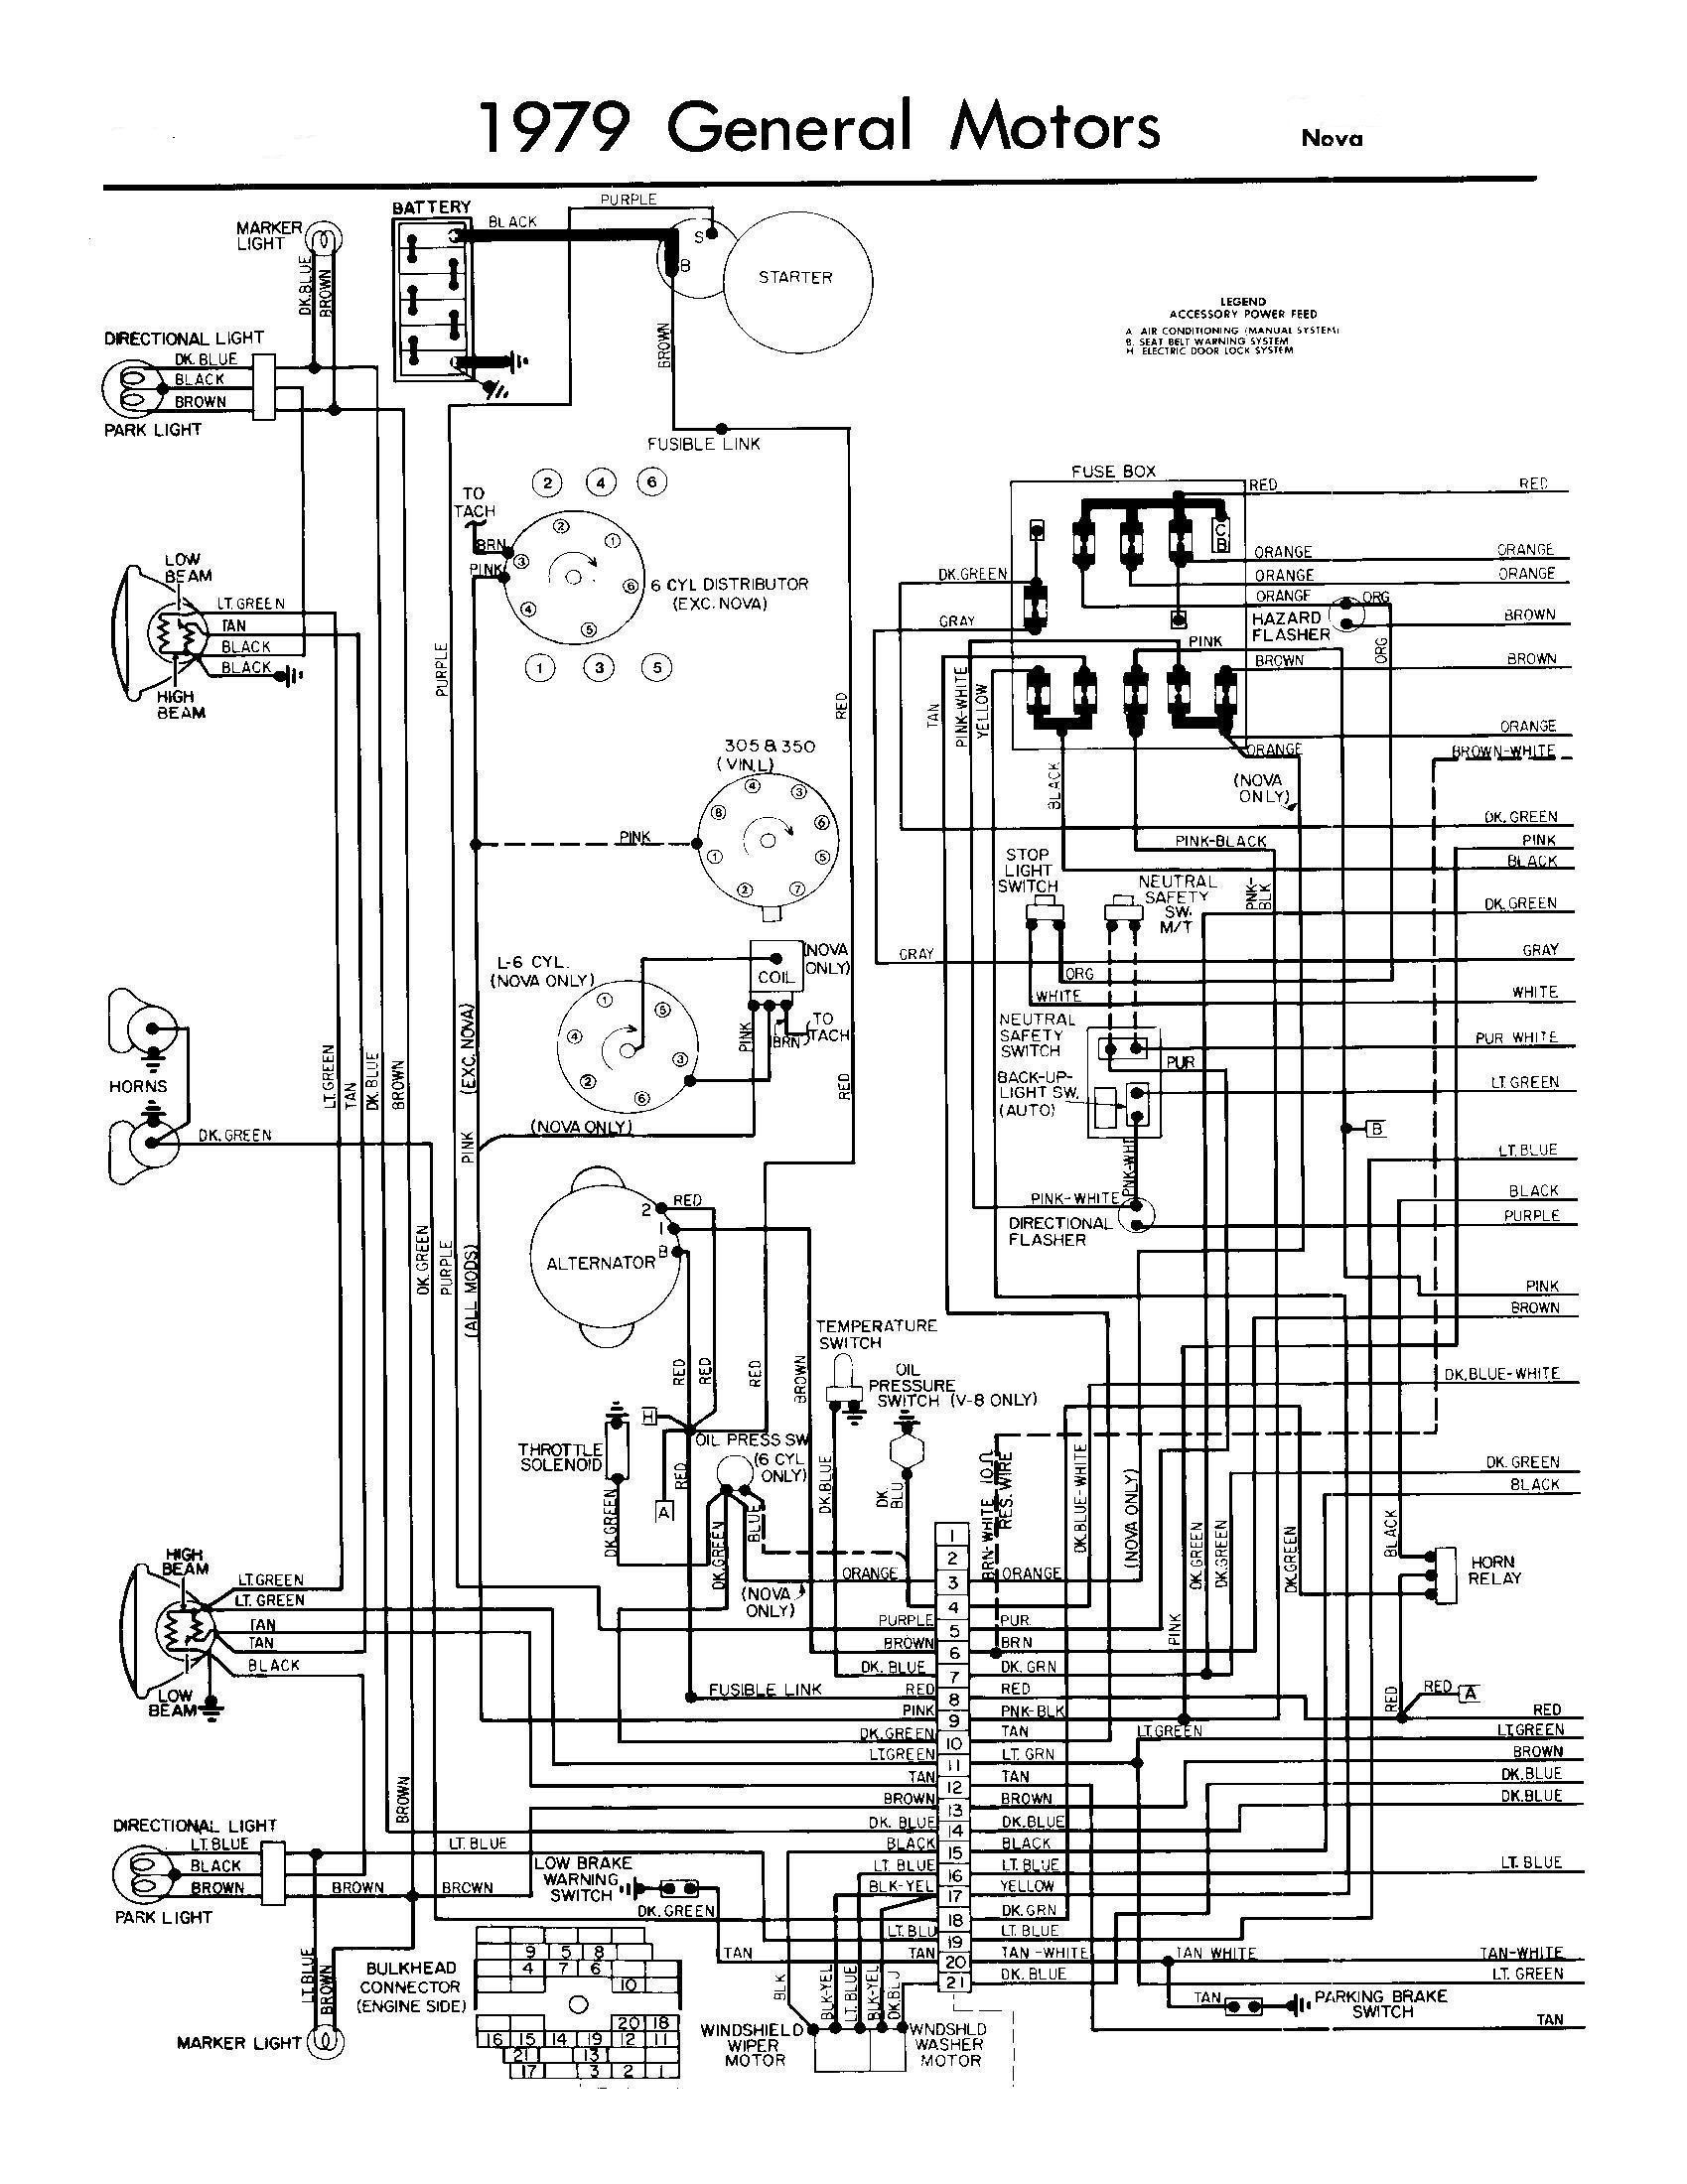 vintage wiring for cars free download wiring diagrams picturesvintage boat wiring diagram download wiring diagramvintage free download wiring diagrams circuit diagram templatevintage boat wiring